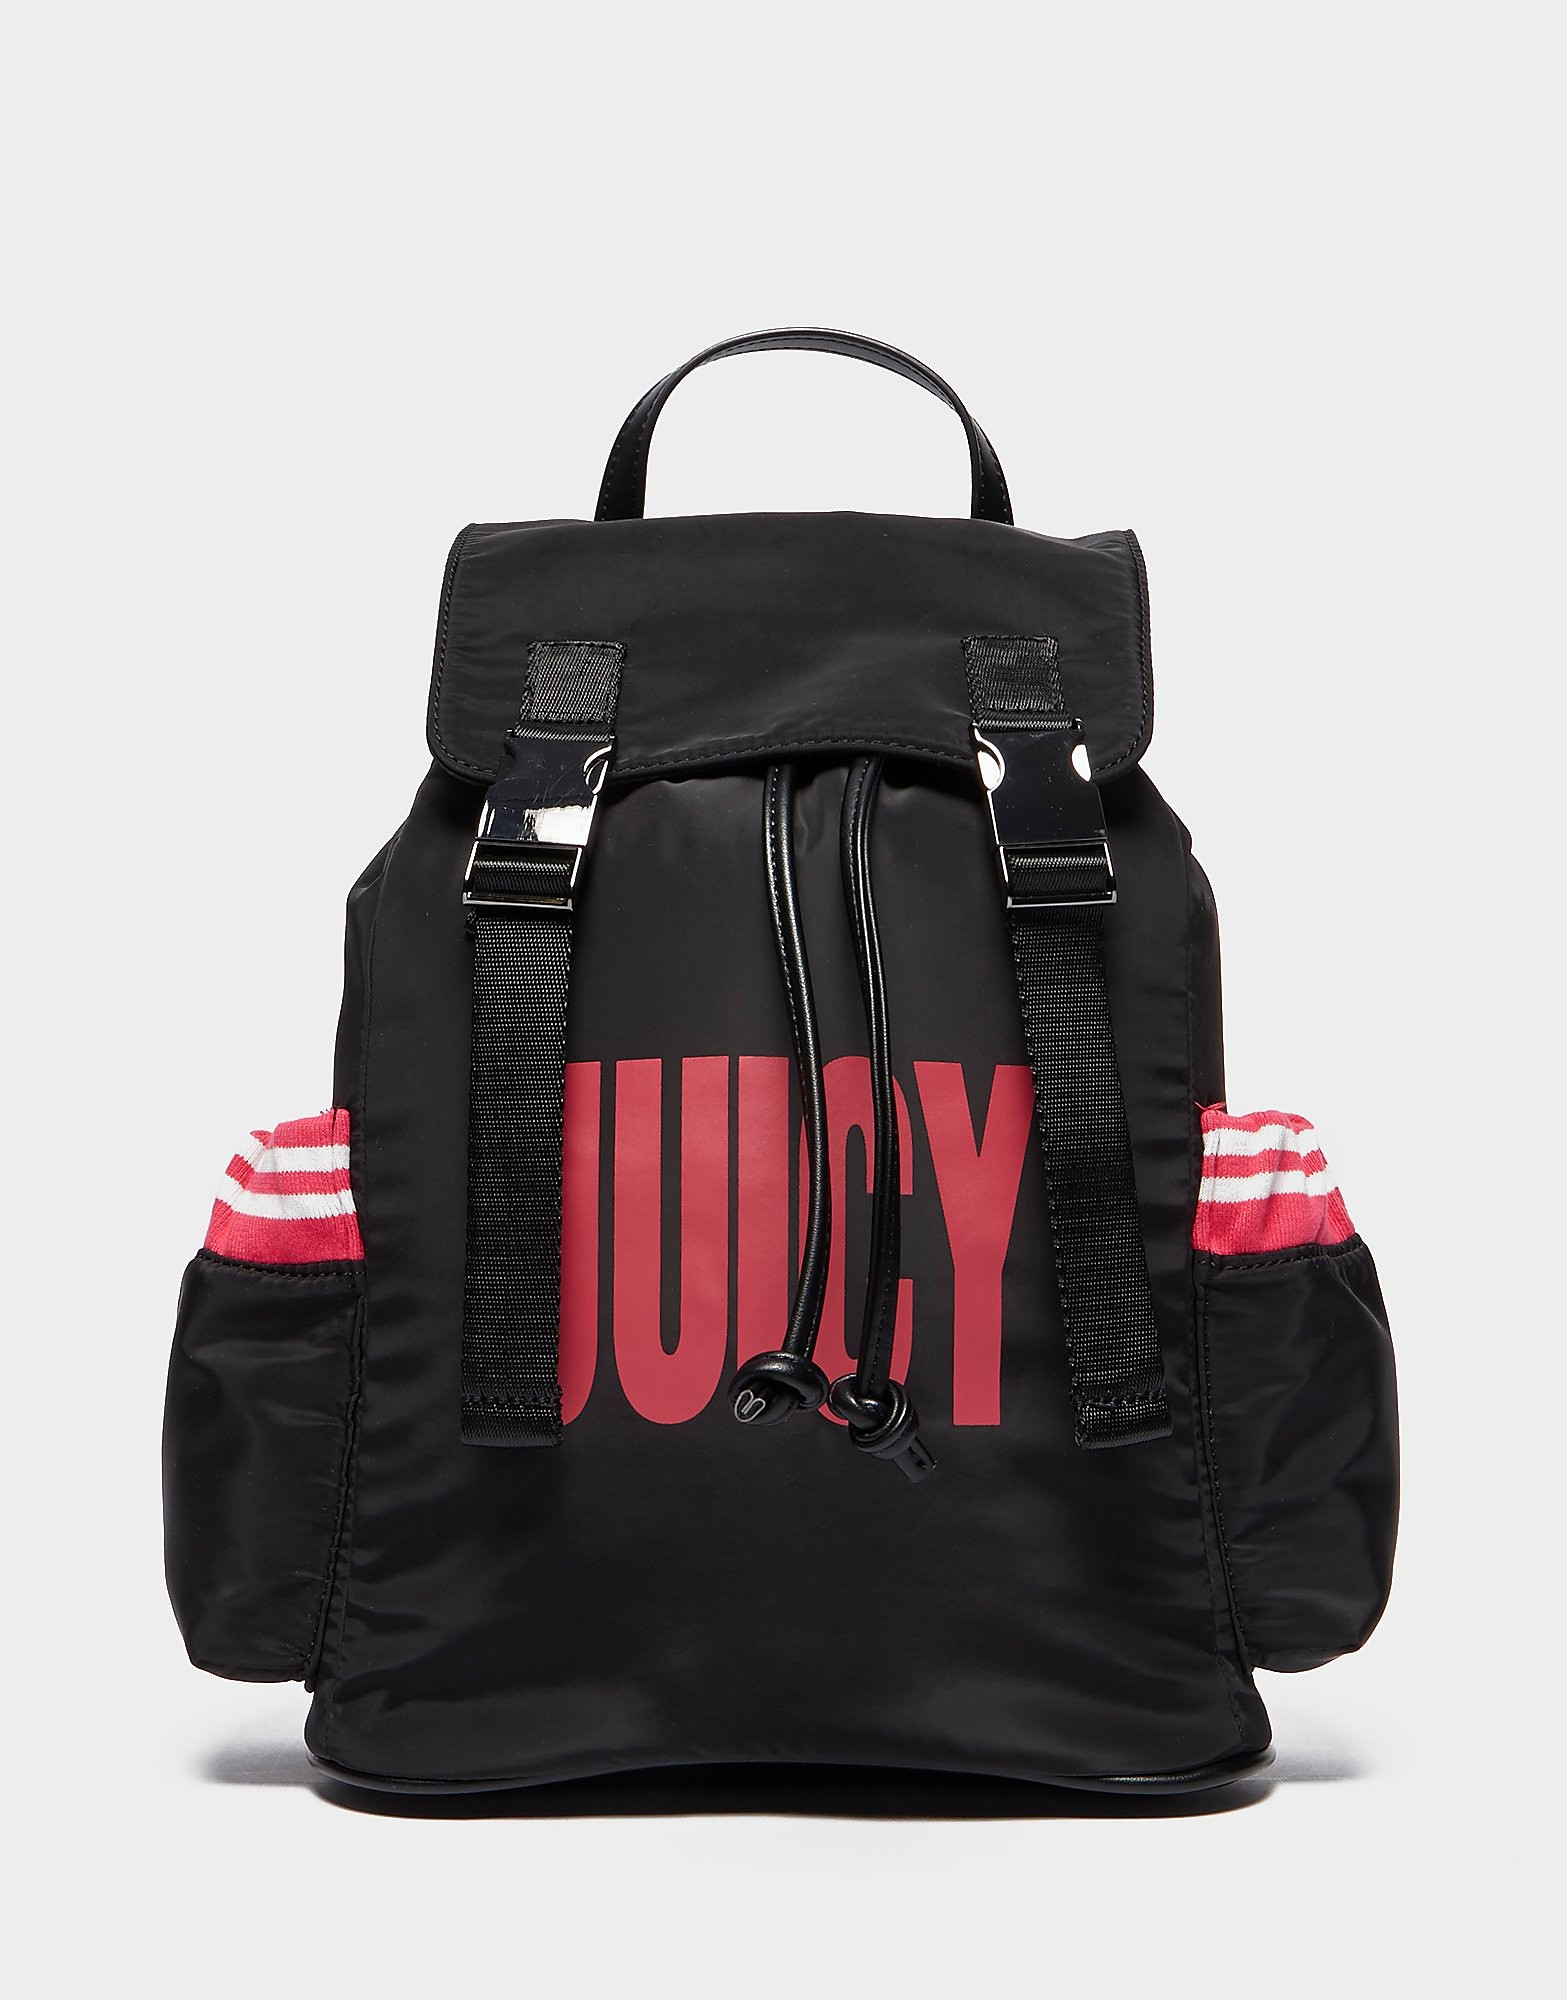 Juicy by Juicy Couture Backpack